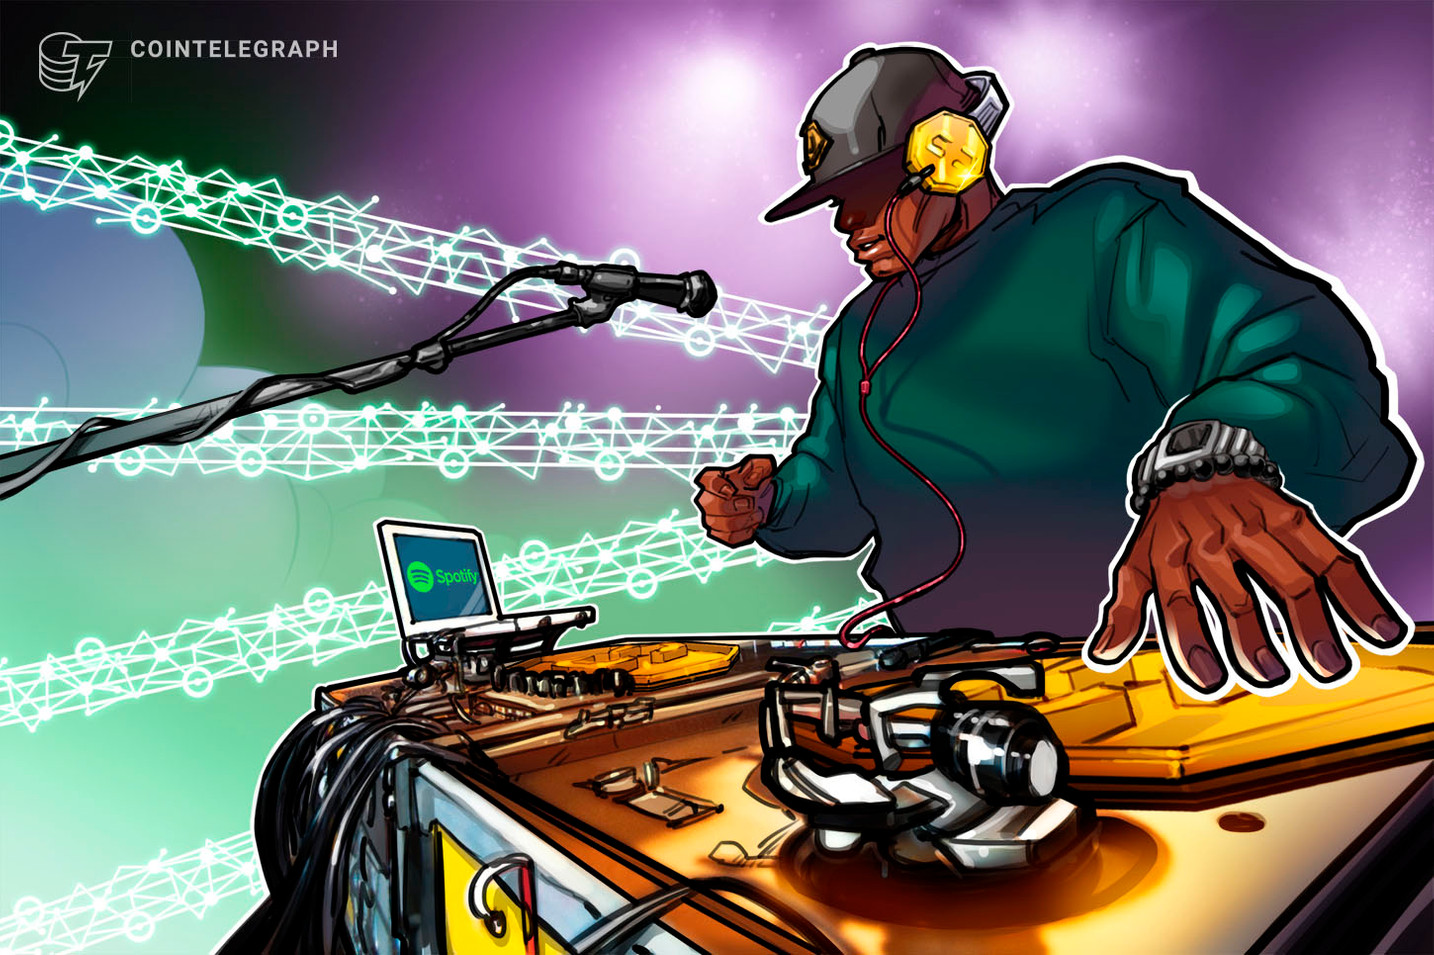 Audio streaming giant Spotify is looking into crypto payments